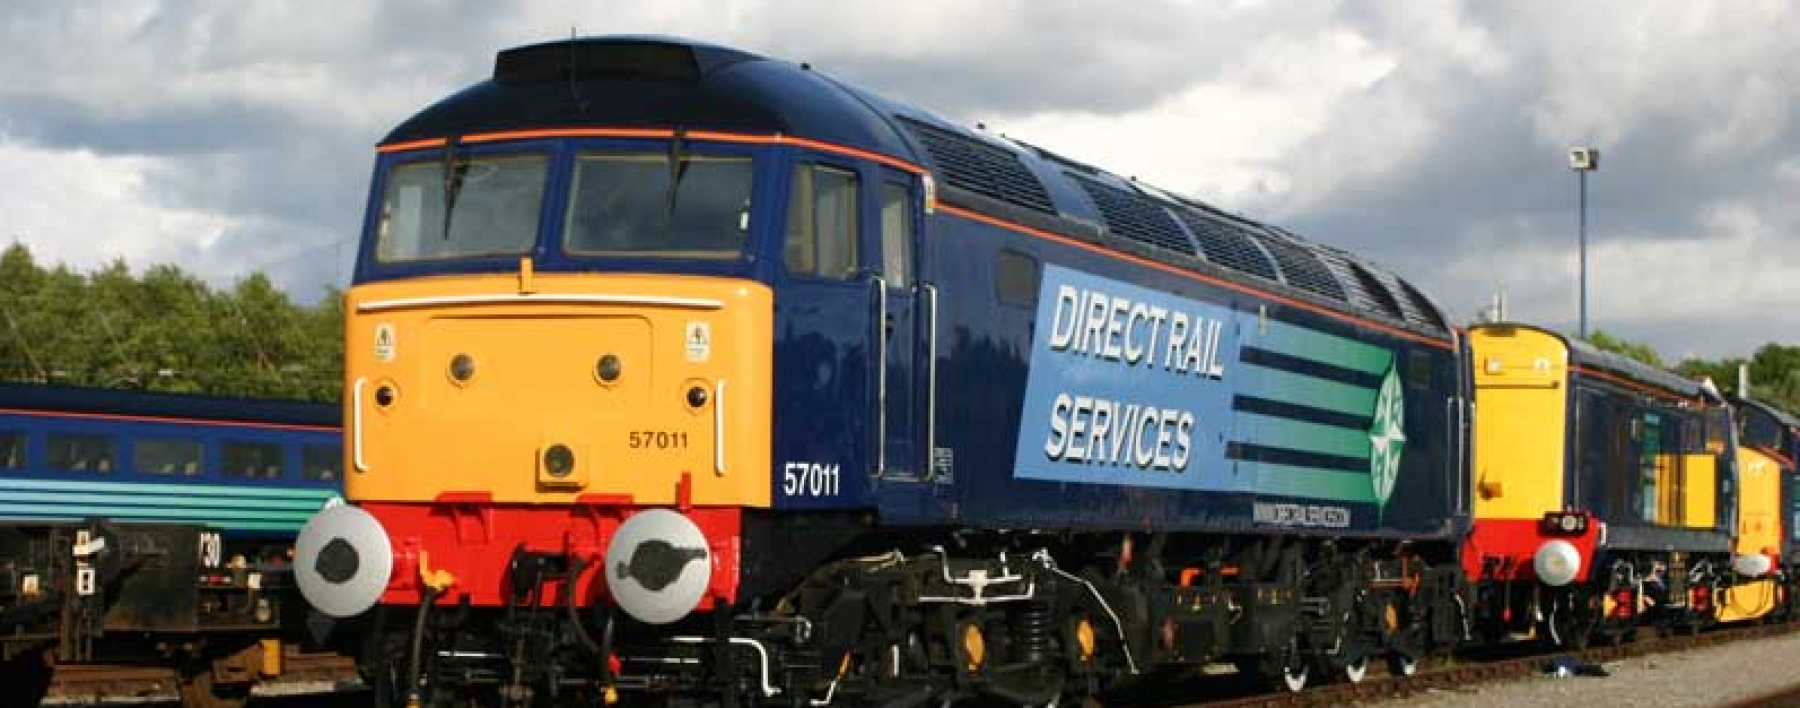 Direct Rail Services fleet livery